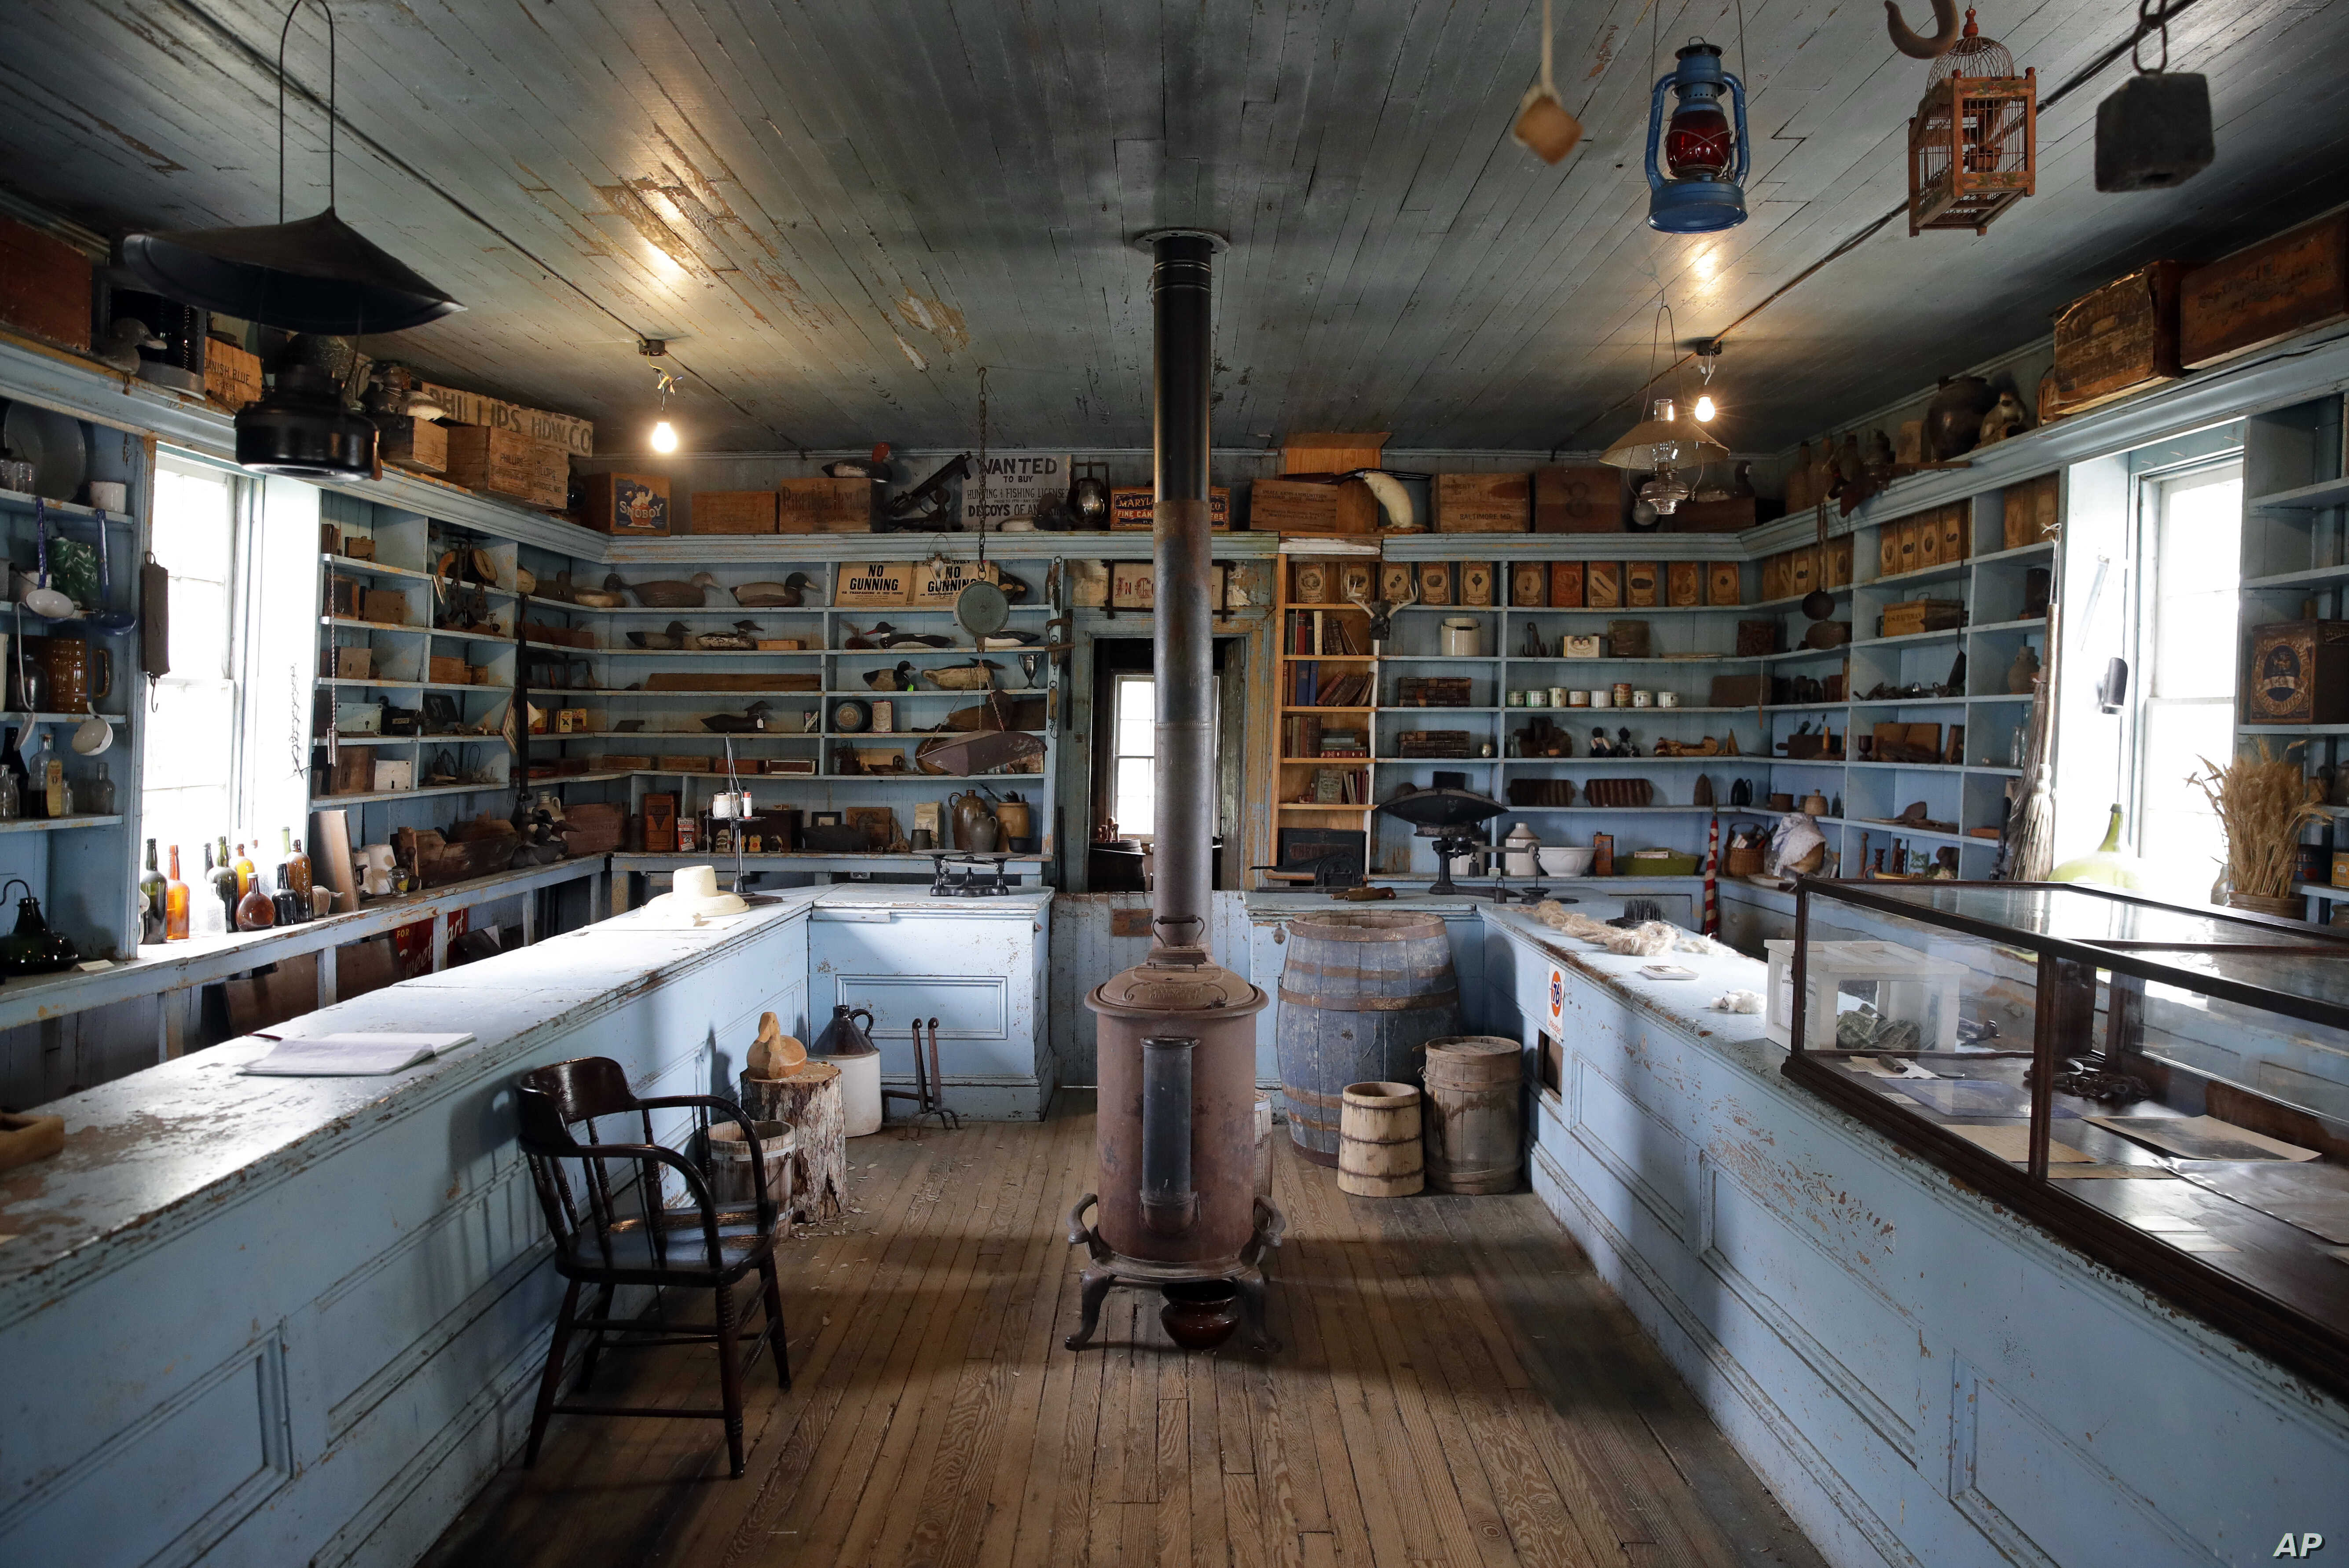 Photo shows the interior of the Bucktown Village Store, a rural store building that has been restored on the spot believed to be where Harriet Tubman refused a slave owner's orders to help him detain the slave, in Bucktown, Maryland, May 12, 2017.